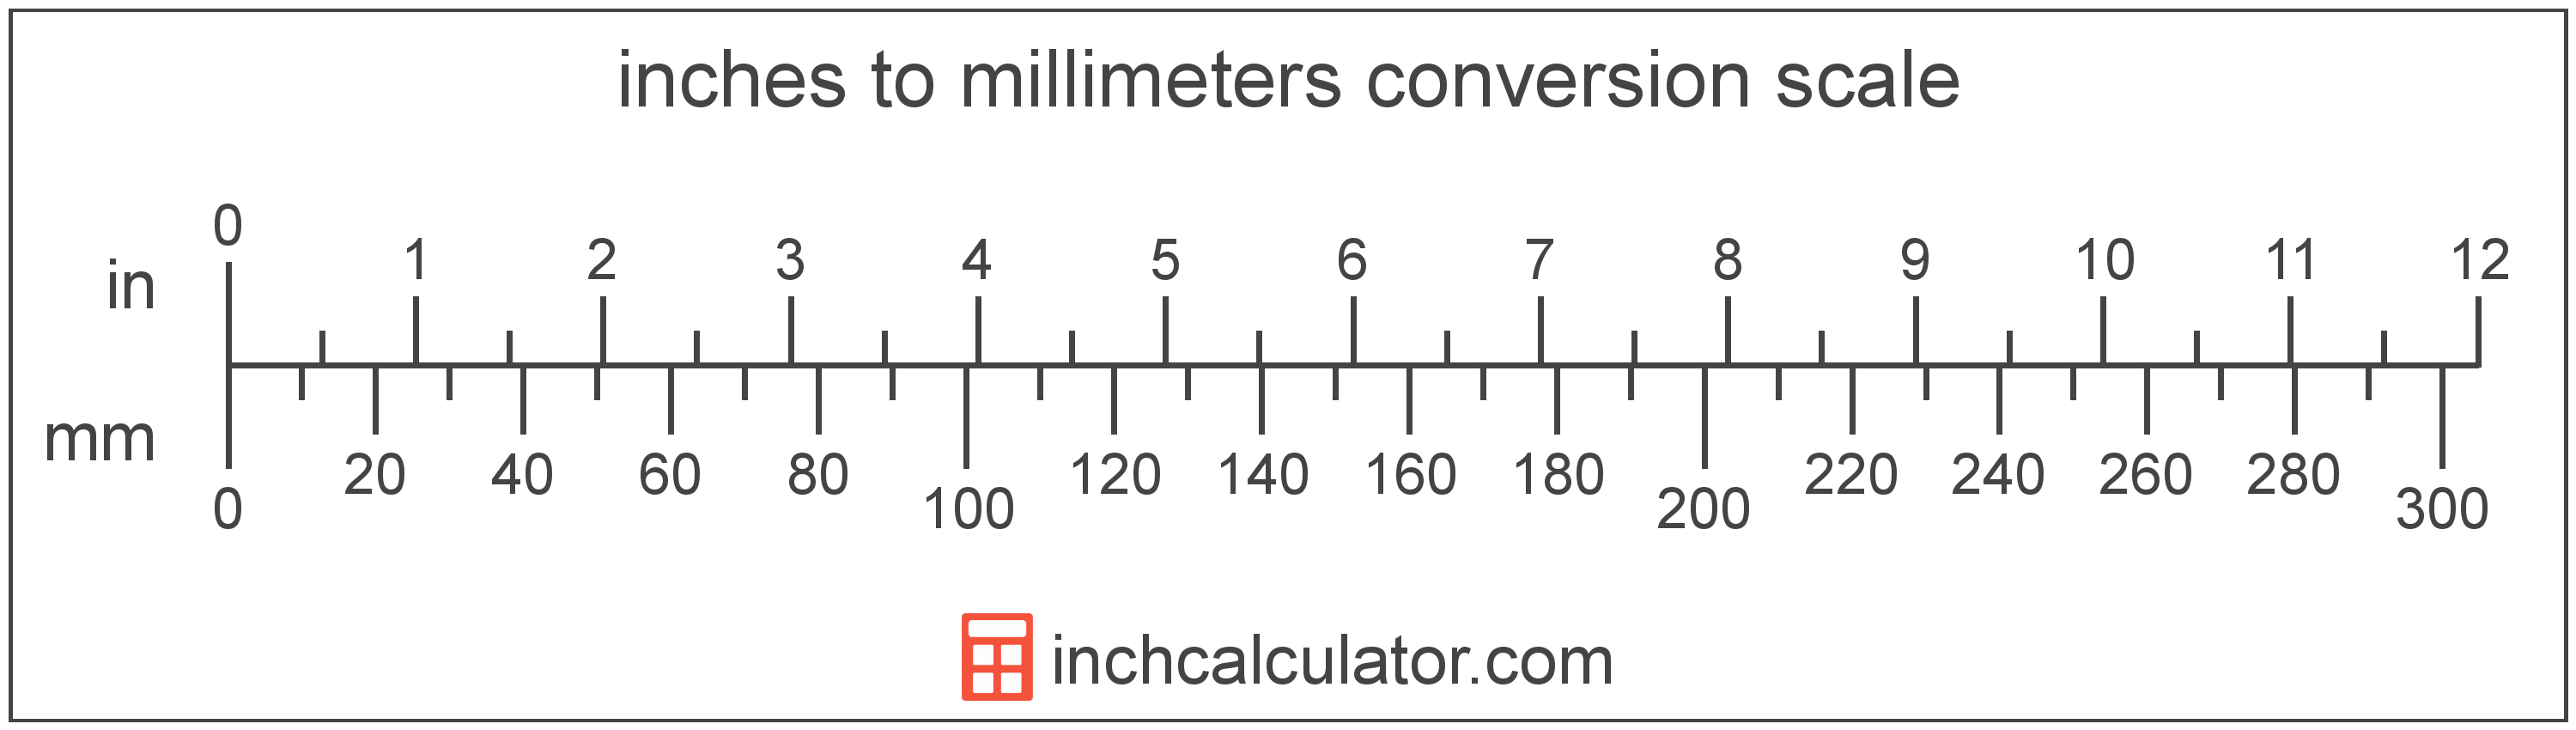 How tall is 5 ft 4 in centimeters? How high is 5 foot 4? Use this easy calculator to convert feet and inches to metric.